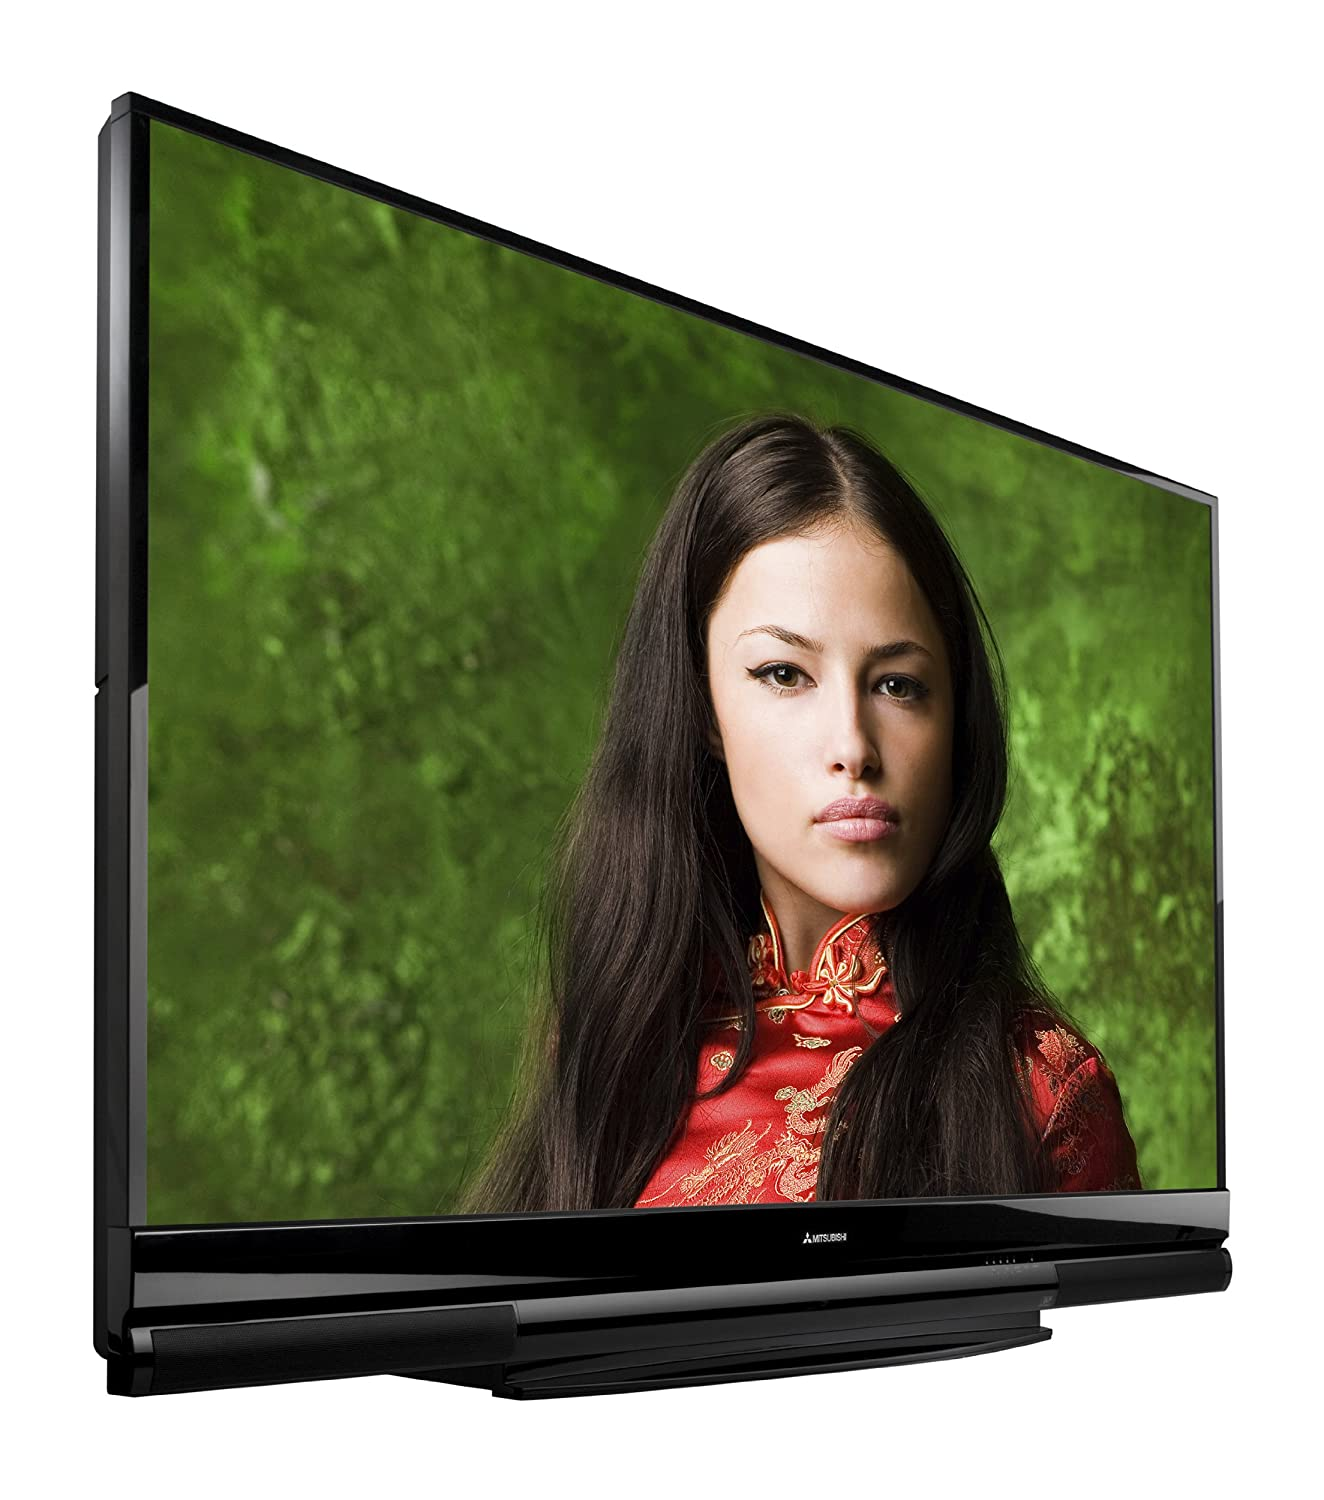 810z1v9vWwL._SL1500_ amazon com mitsubishi wd 73837 73 inch 1080p 120hz home theater  at cos-gaming.co